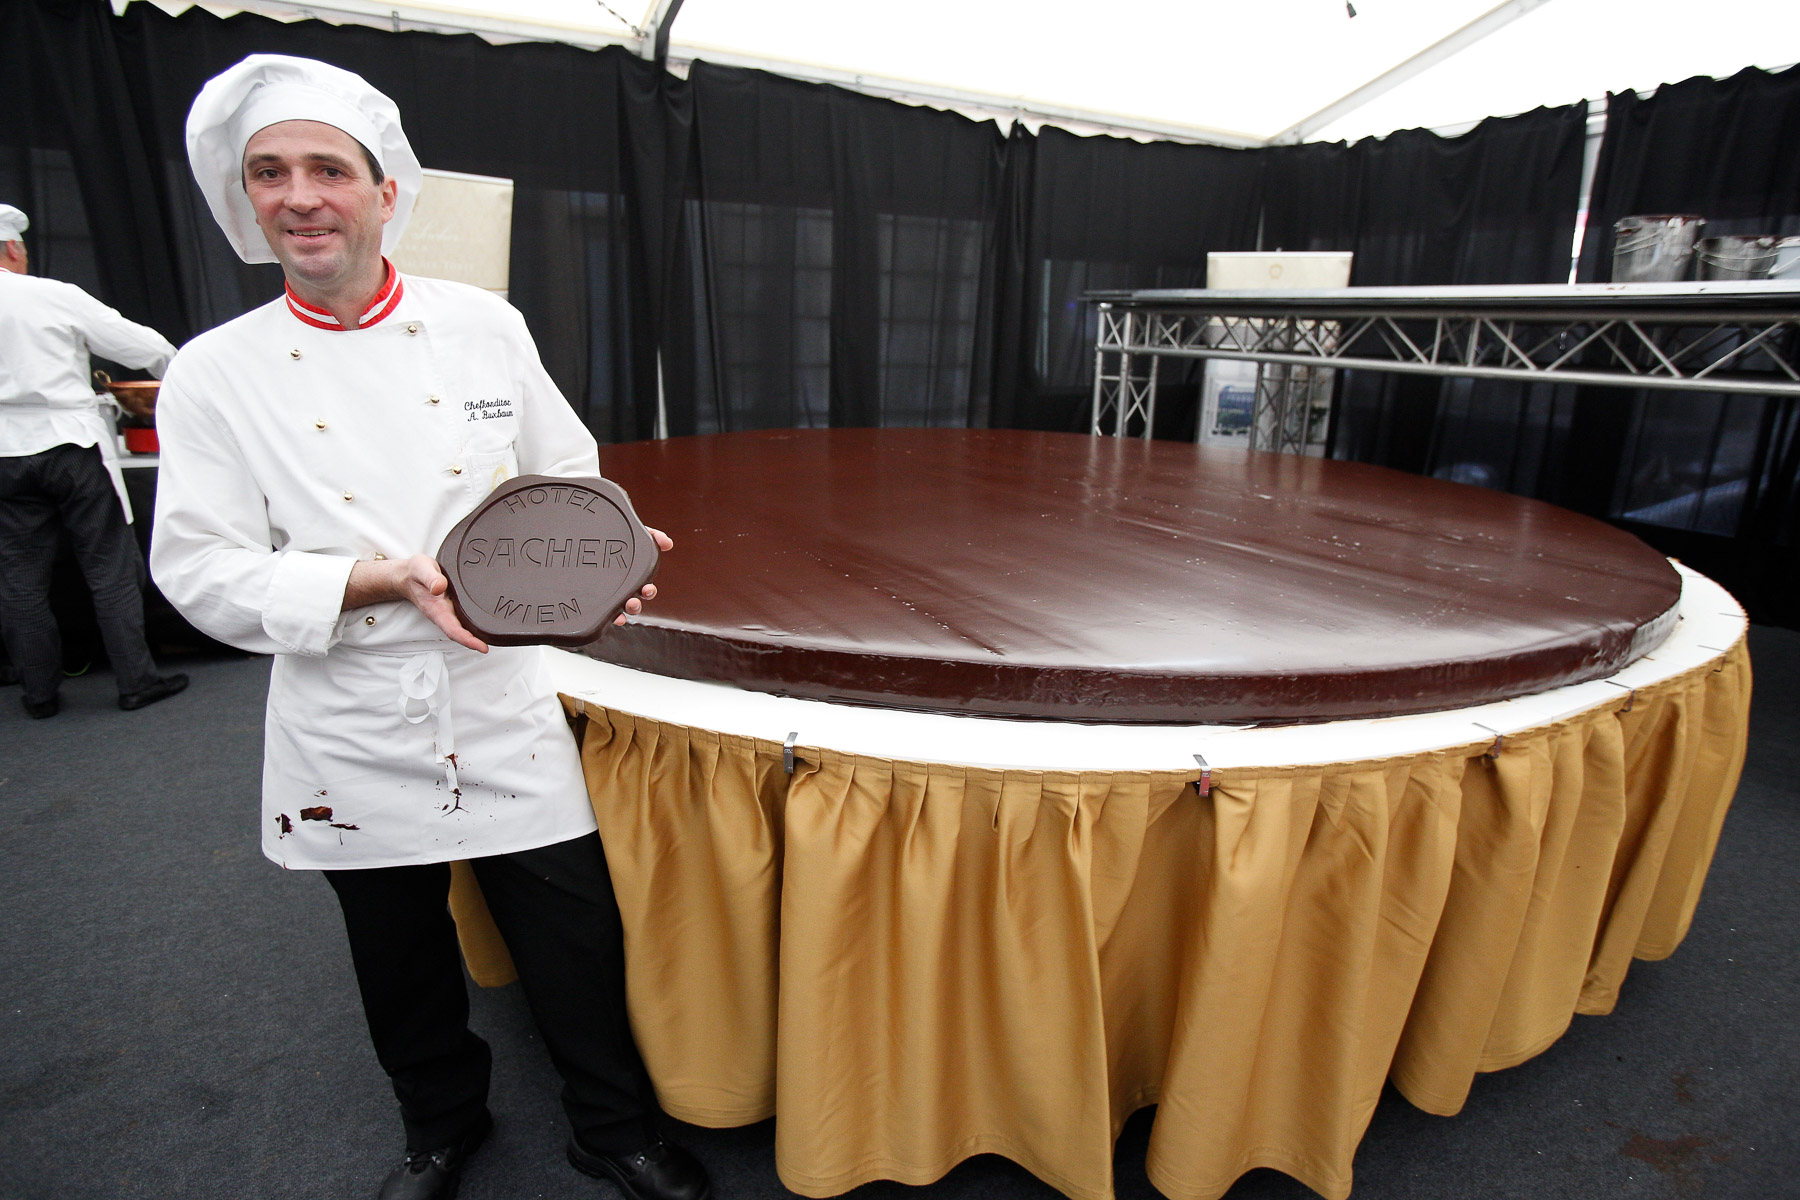 Head confectioner Alfred Buxbaum poses with the chocolate emblem that will be placed on top of the world's largest original Sacher-torte as a final touch in Ljubljana, Slovenia, Sept. 21, 2016. The largest original Sacher-cake was made to mark the ending of the Vienna Days in Ljubljana.